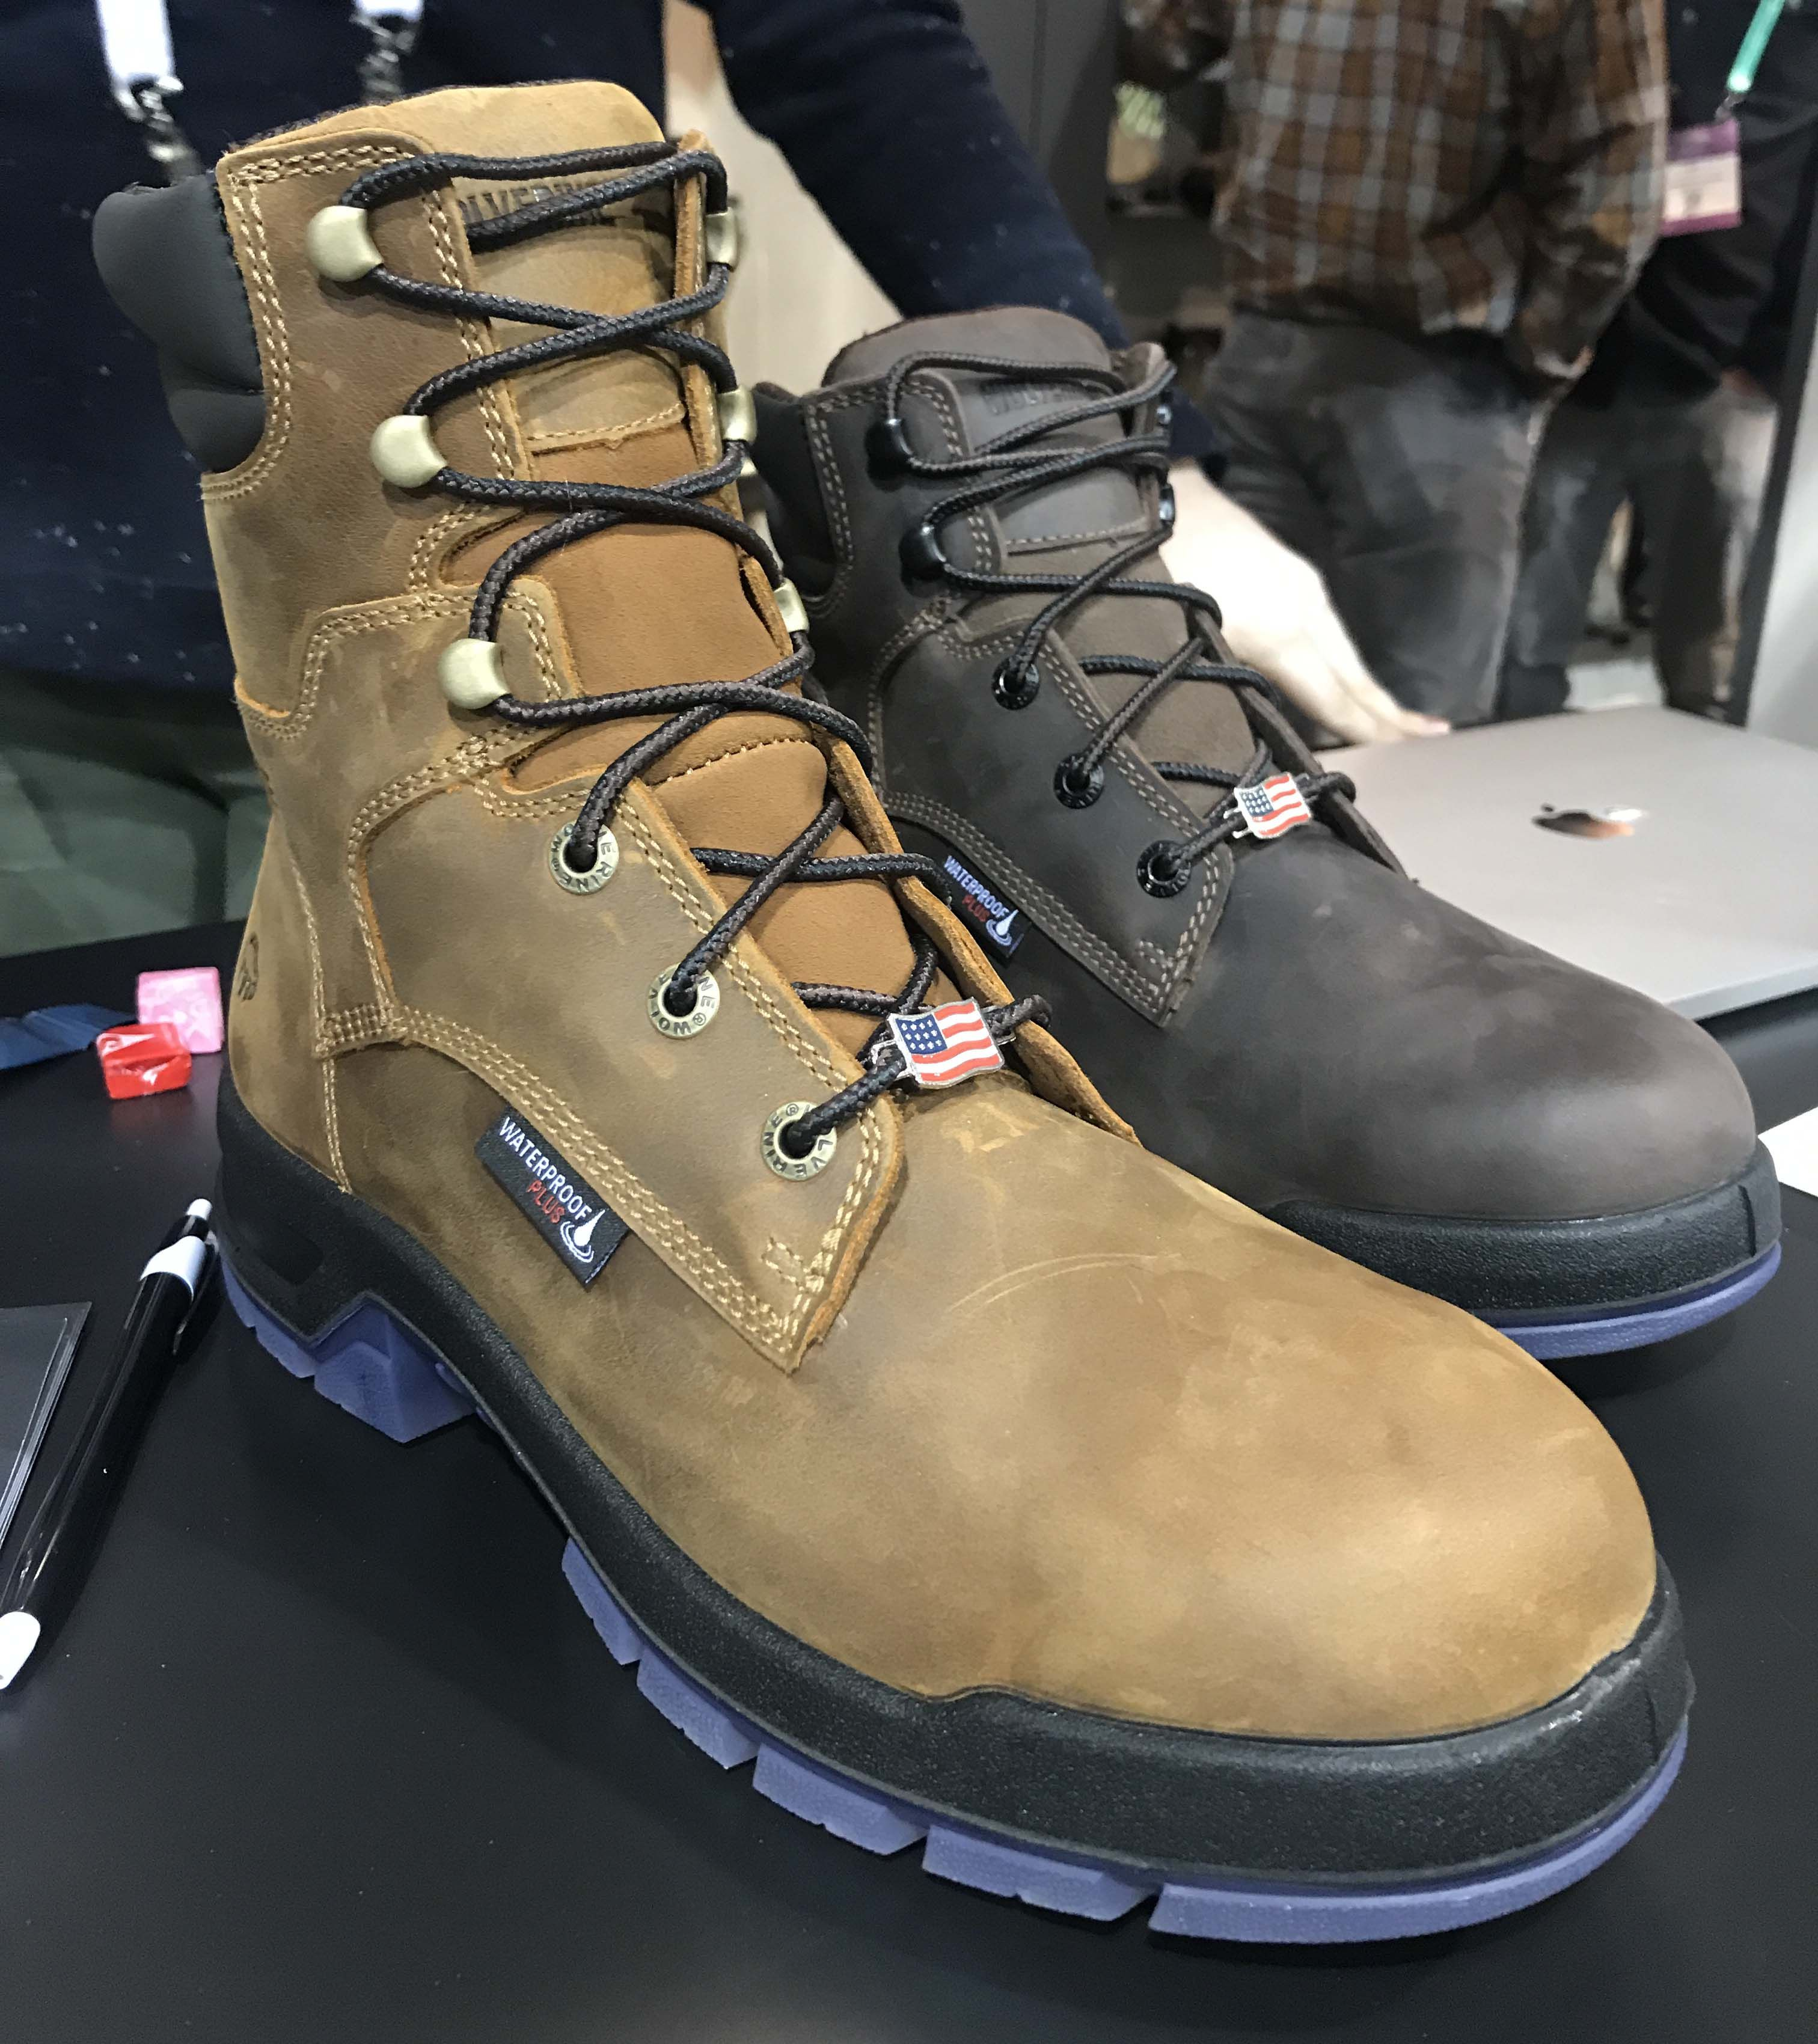 f71af3e67a The Very Best Gear at Outdoor Retailer Winter 2018